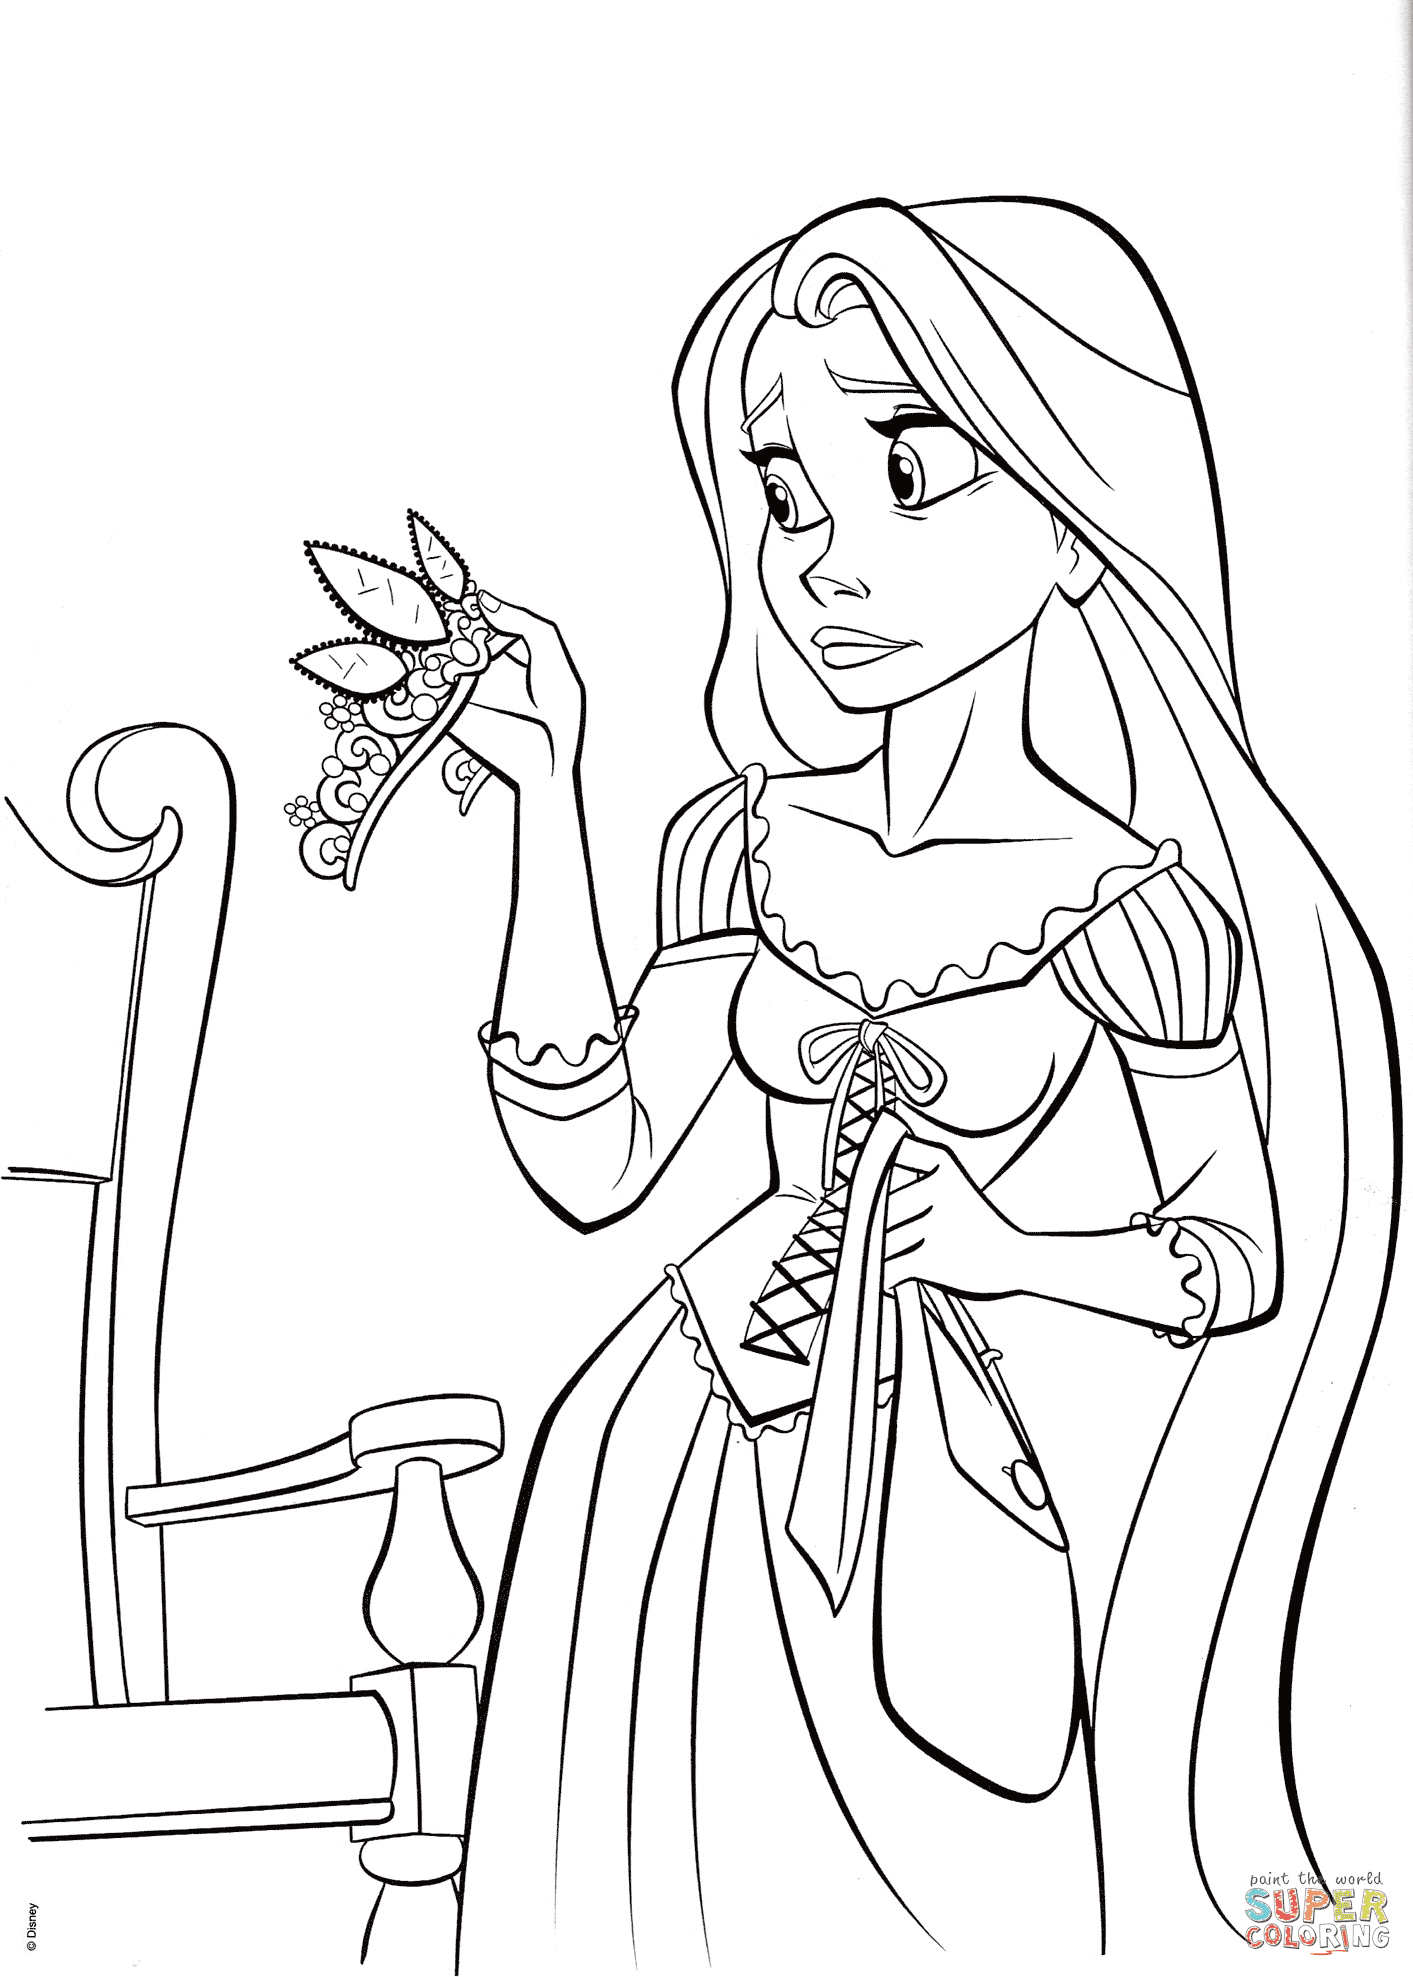 Princess Rapunzel with Crown coloring page | Free ...